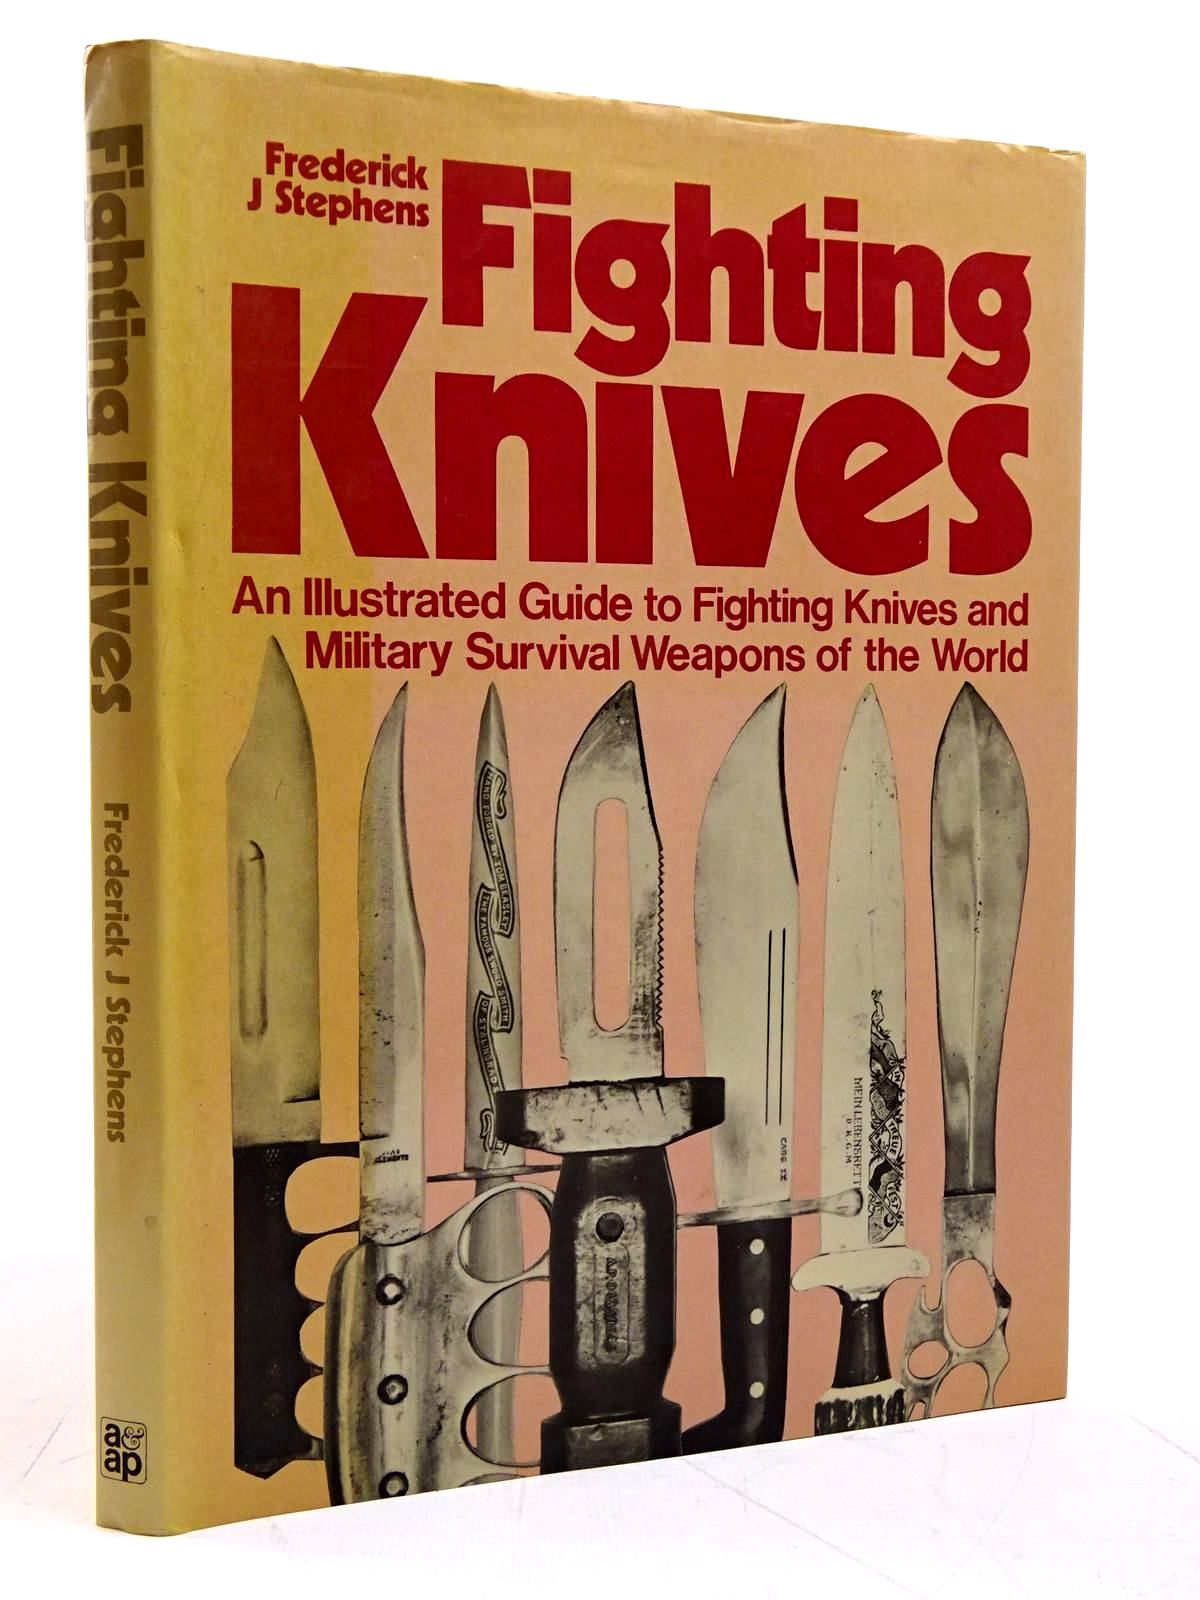 Photo of FIGHTING KNIVES AN ILLUSTRATED GUIDE TO FIGHTING KNIVES AND MILITARY SURVIVAL WEAPONS OF THE WORLD written by Stephens, Frederick J. published by Arms & Armour Press (STOCK CODE: 2131612)  for sale by Stella & Rose's Books